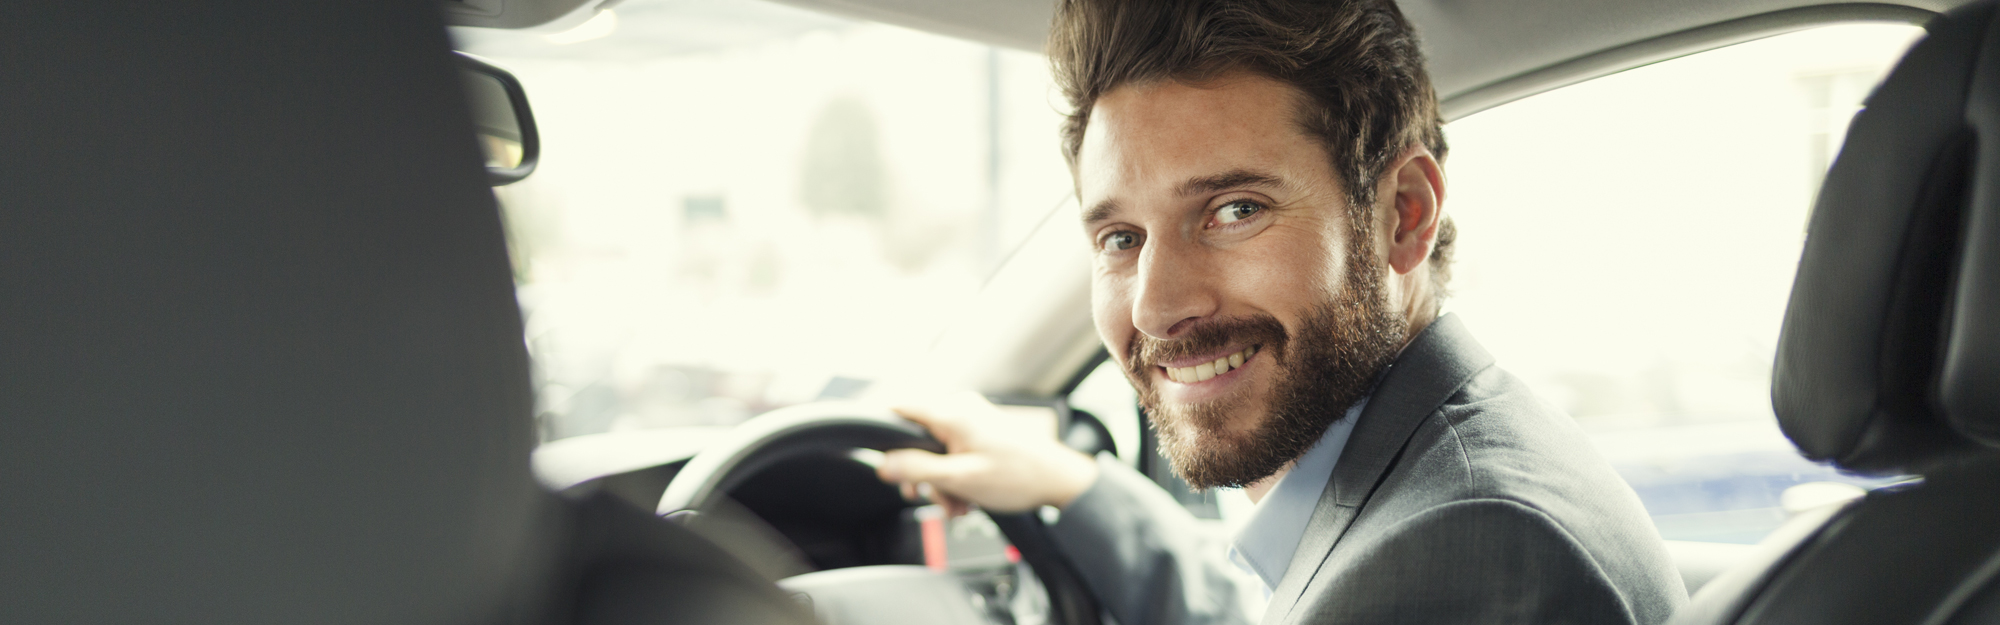 Smiling man in car